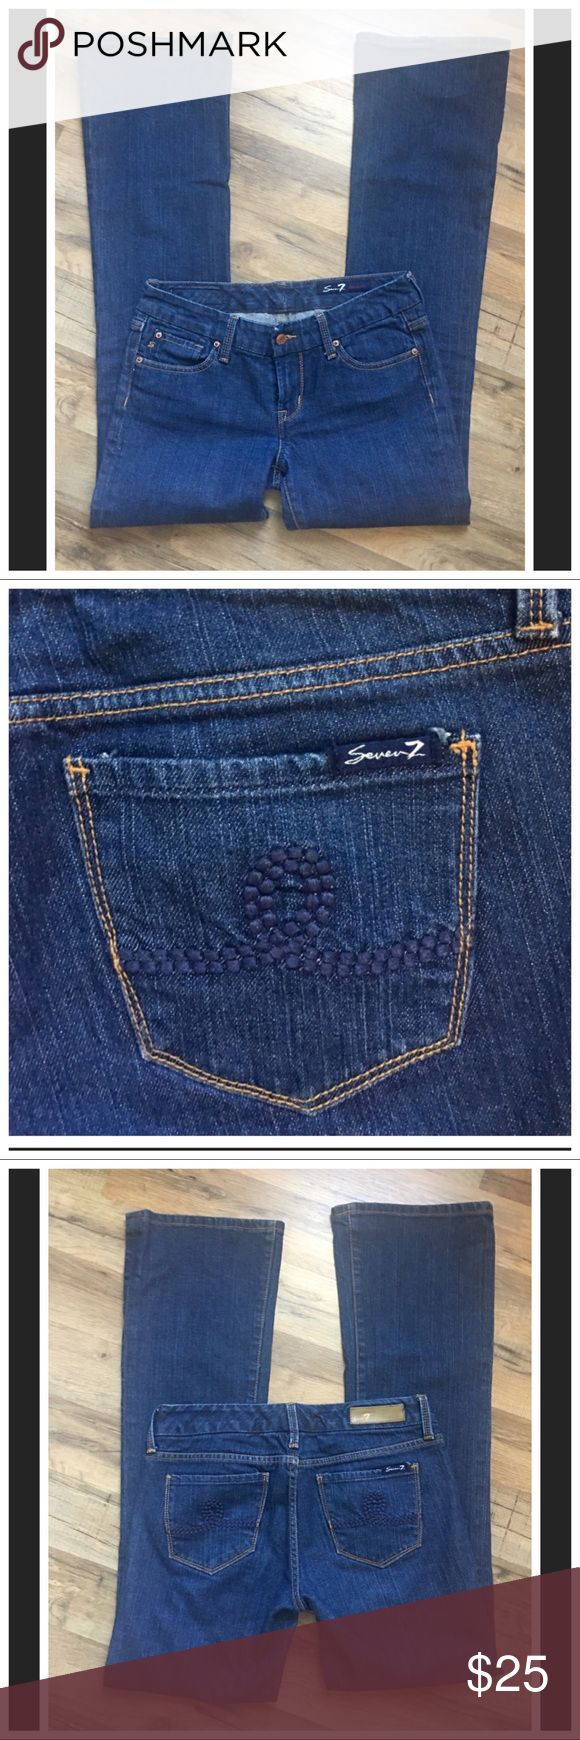 """Seven7 Premium Bootcut Jeans Seven7 Premium Bootcut Jeans Size-28       99%Cotton/1%Spandex Very nice pair of Bootcut Jeans 👖Nice soft denim with a tad of spandex for stretch..measurements are approx: Inseam-32"""" Rise(Front)-7 1/2"""" Rise(rear)-13"""" Waist flat across front-16"""" Tad bit of wear in cuffs shown in photo for full disclosure nothing major. Seven7 Jeans Boot Cut"""